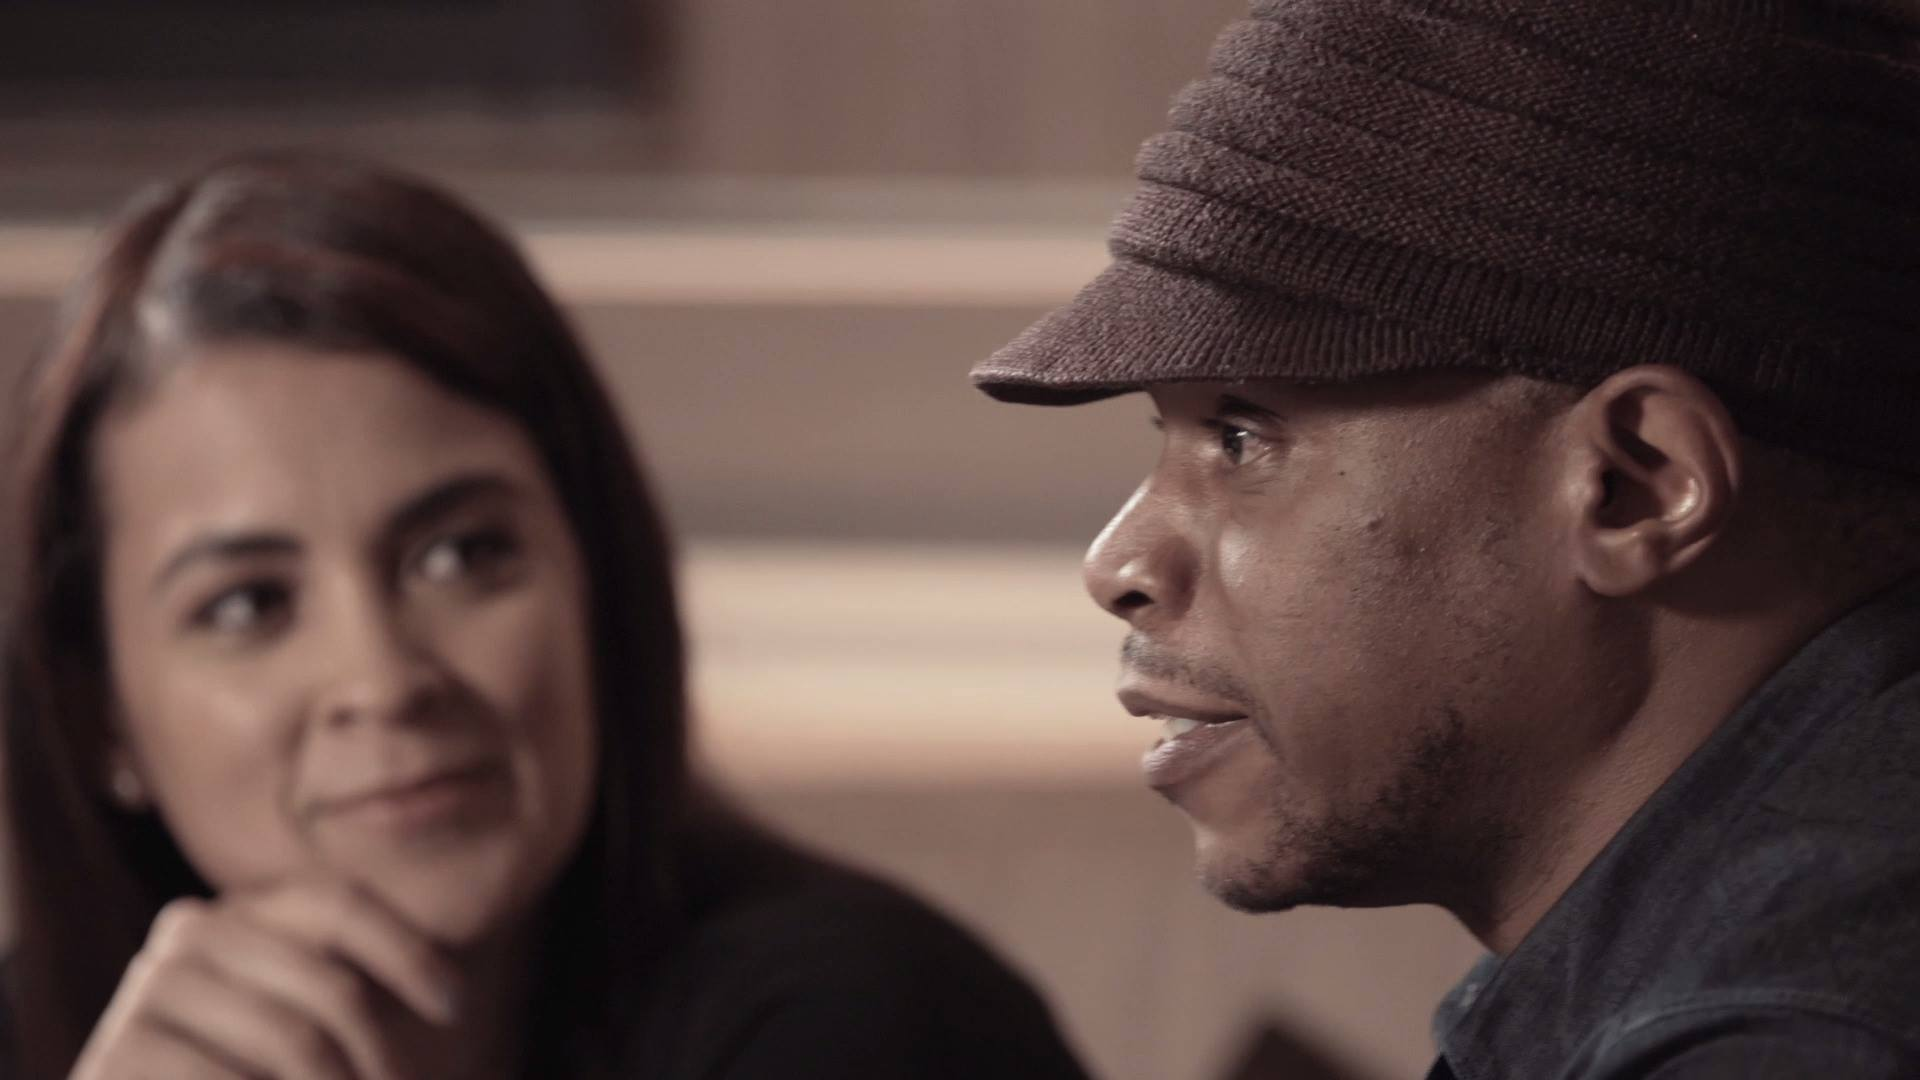 Sway Calloway discusses social media's impact on hip-hop journalism in episode 6 of 'Behind The Breaks.'   Watch more episodes at TheBreaks.VH1.com.